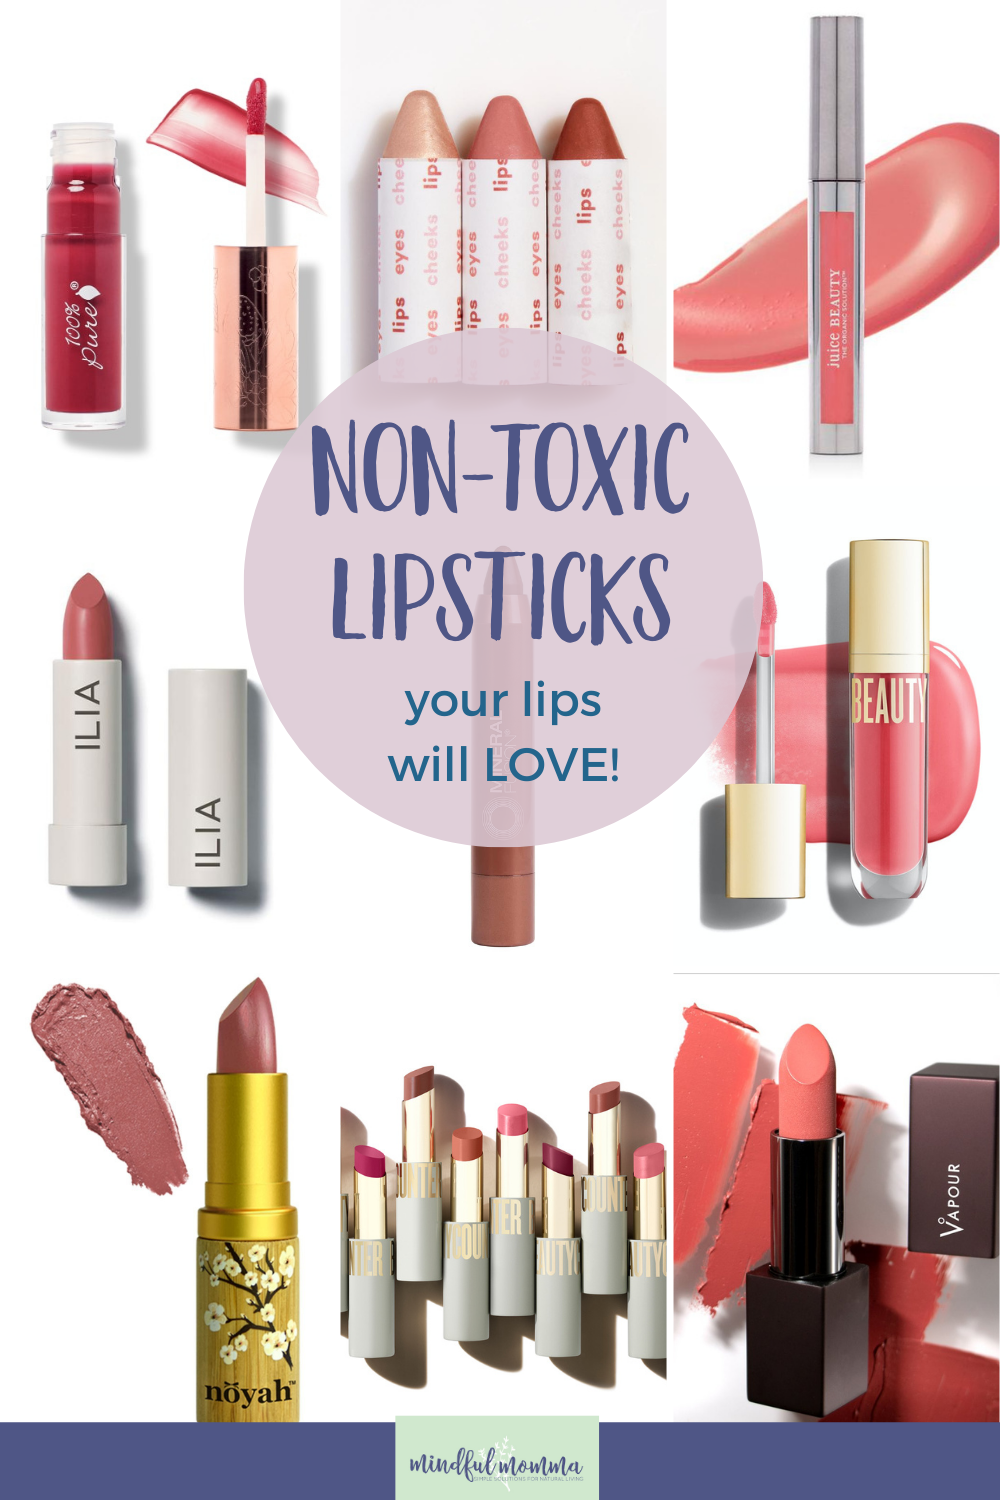 Discover the best non toxic lipstick and lip gloss brands made with natural and organic ingredients, that are lead-free, paraben free and better for your health and the planet. via @MindfulMomma